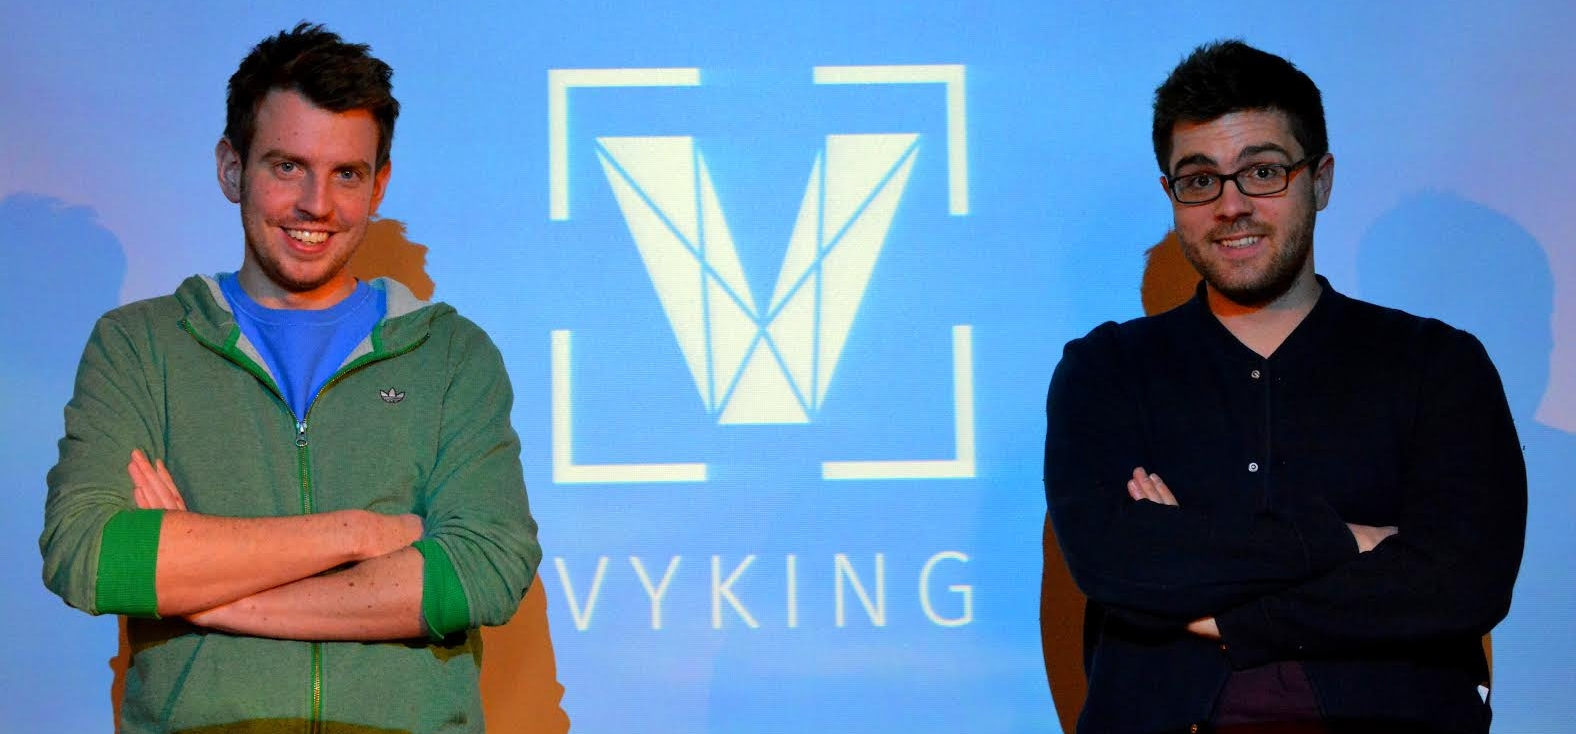 €1m Funding Takes Vyking to New Shores